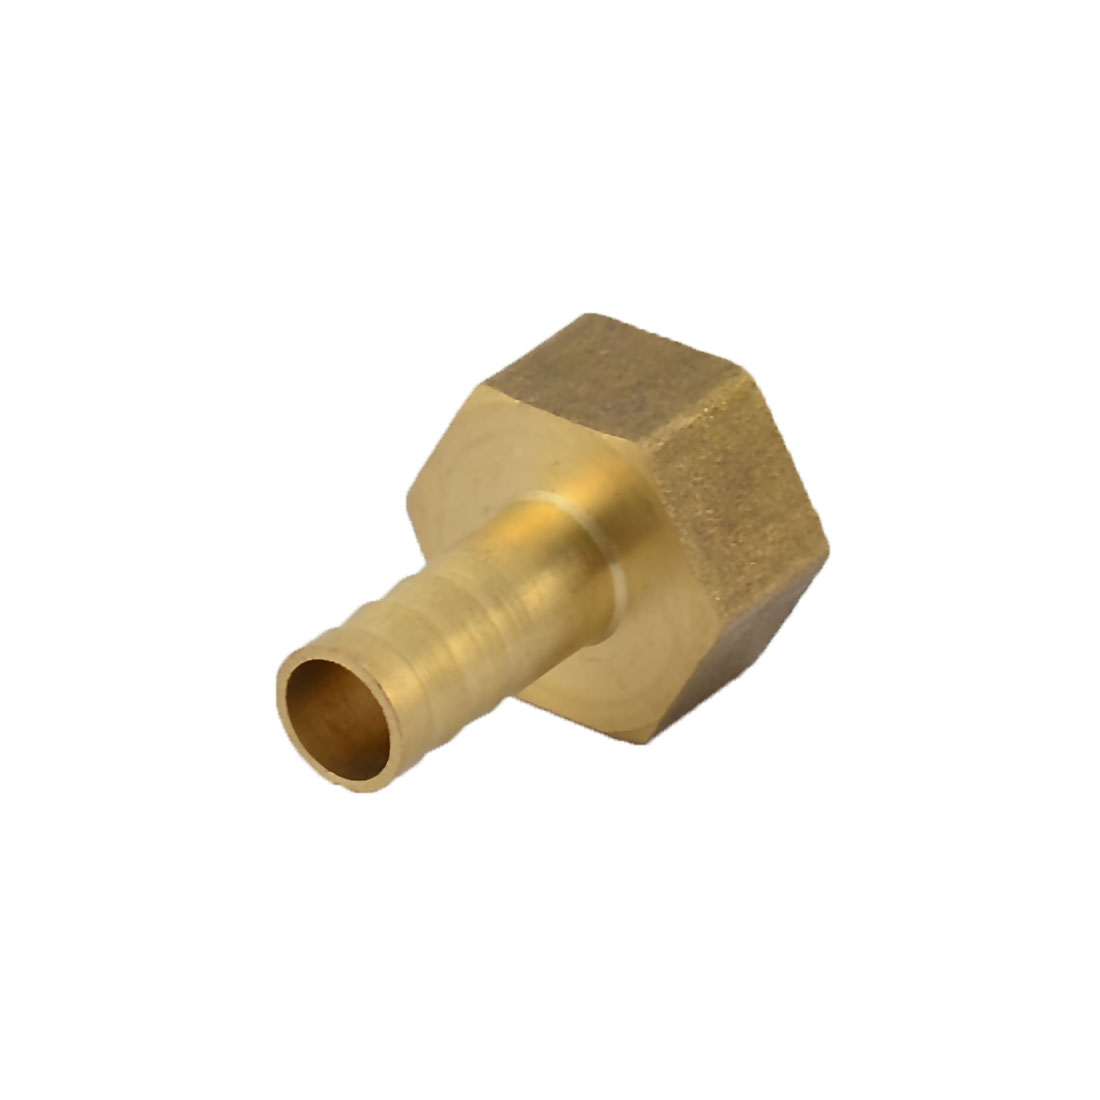 Brass 1/2BSP Female Thread Hose Barb Coupler Quick Joint Connector Adapter for 10mm Inner Dia Hose